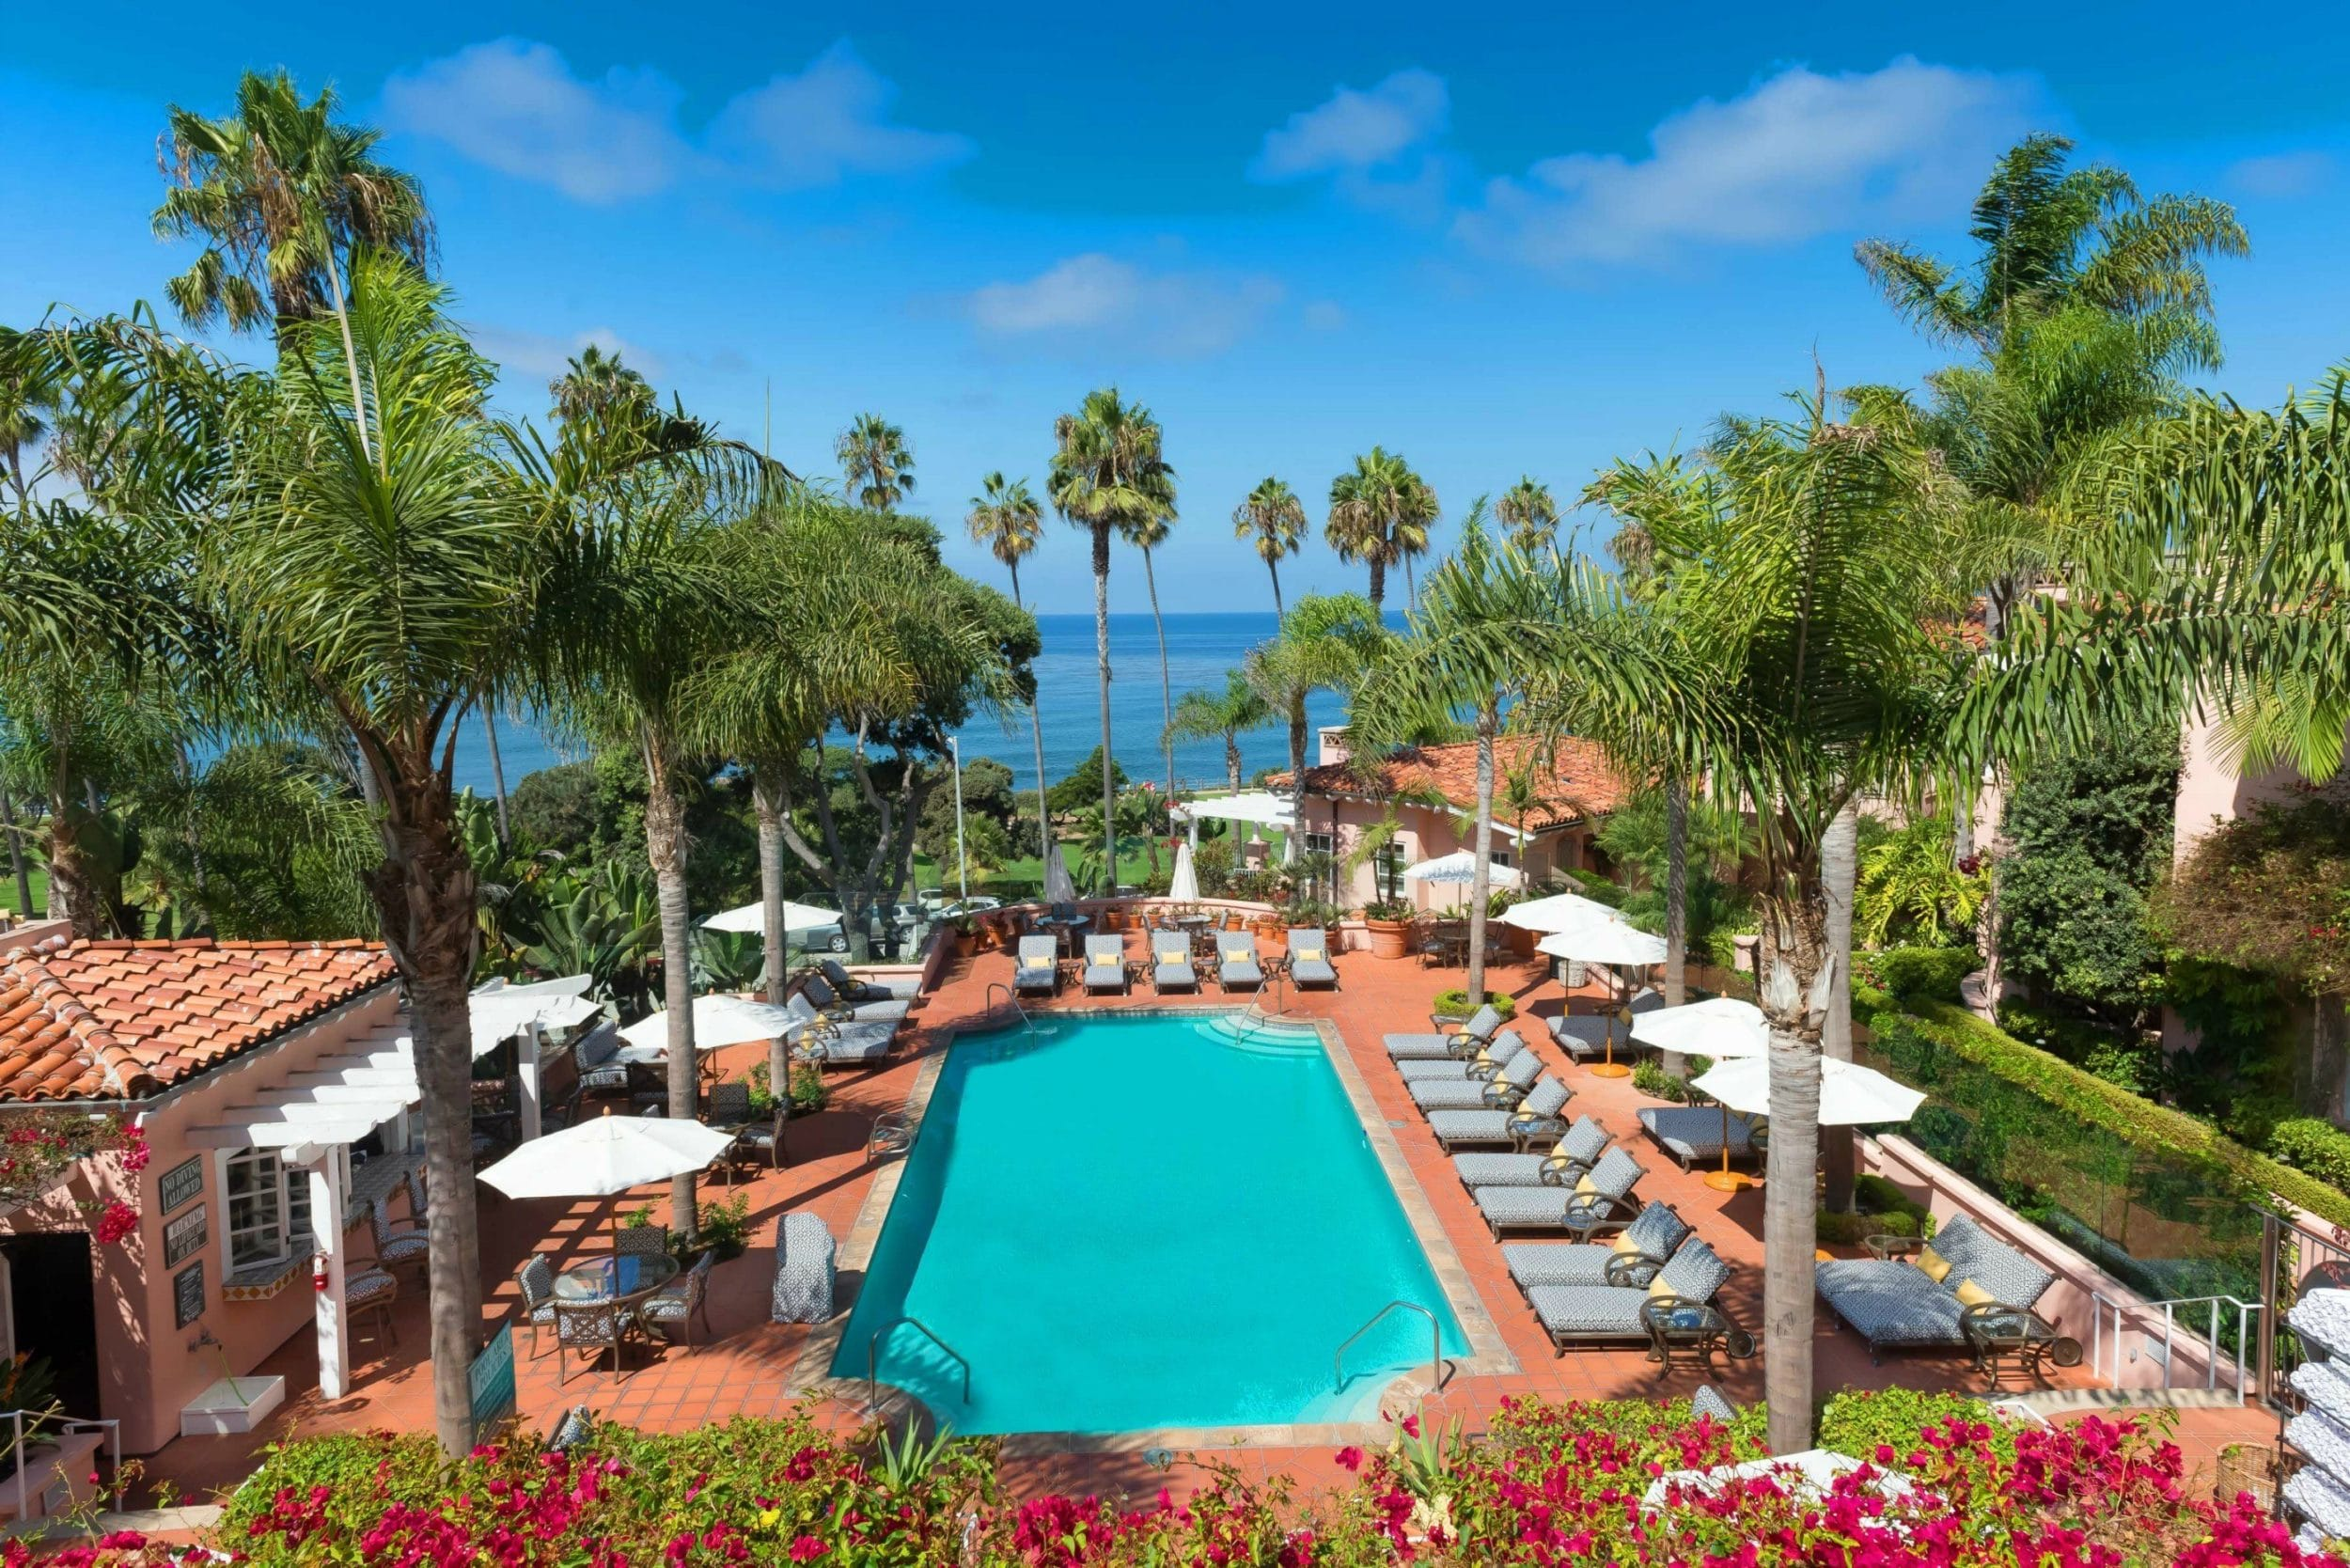 13 Best La Jolla Hotels For Your San Diego Vacation La